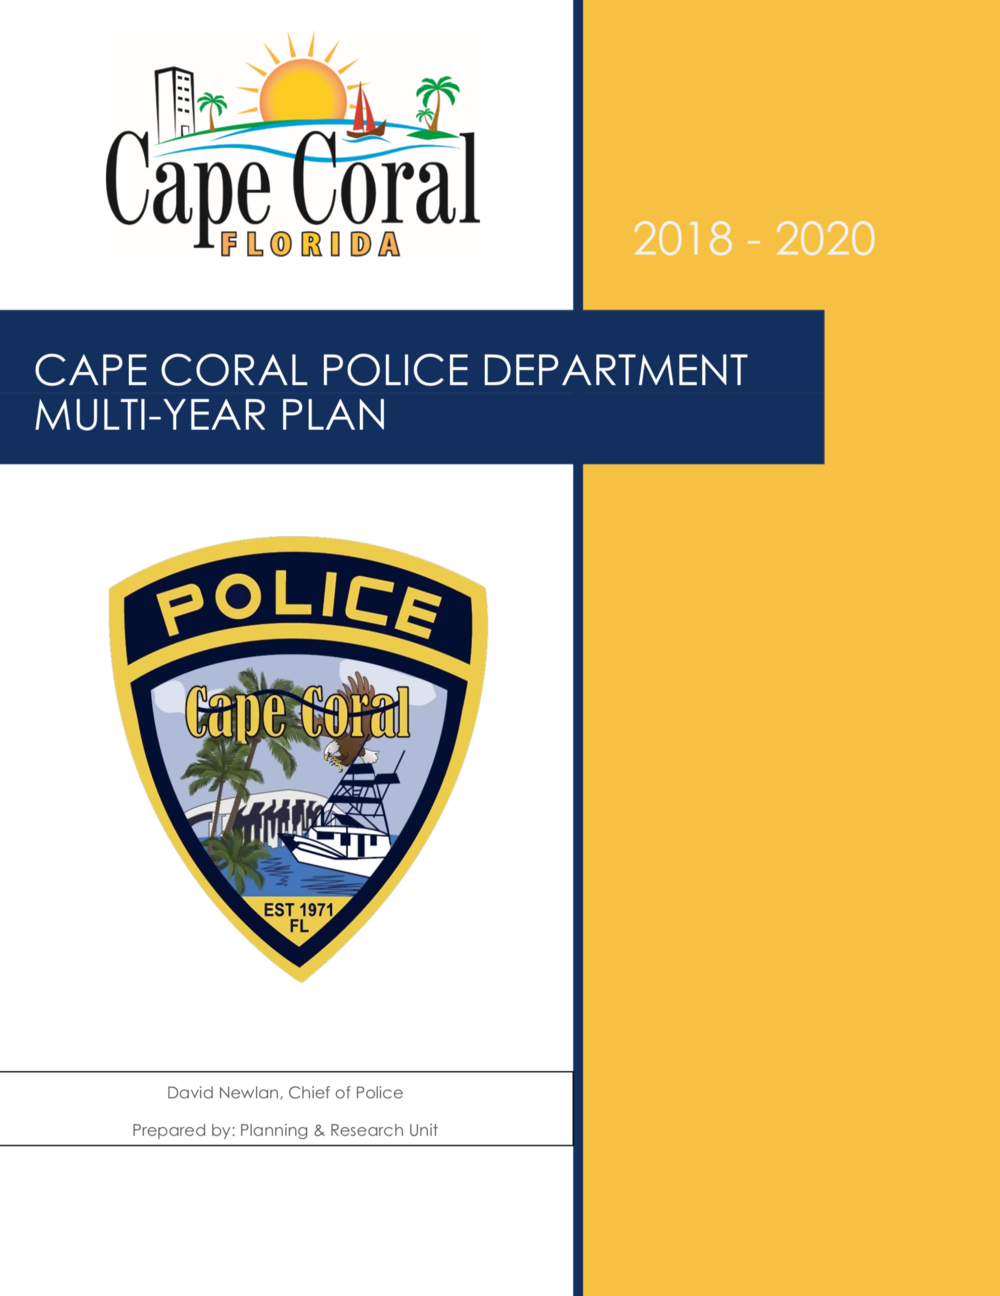 Cape Coral Police Department Multi-Year Plan 2018-2020  - The Multi-Year Plan provides a strategic look at the goals and objectives of the department over a 3 year period.